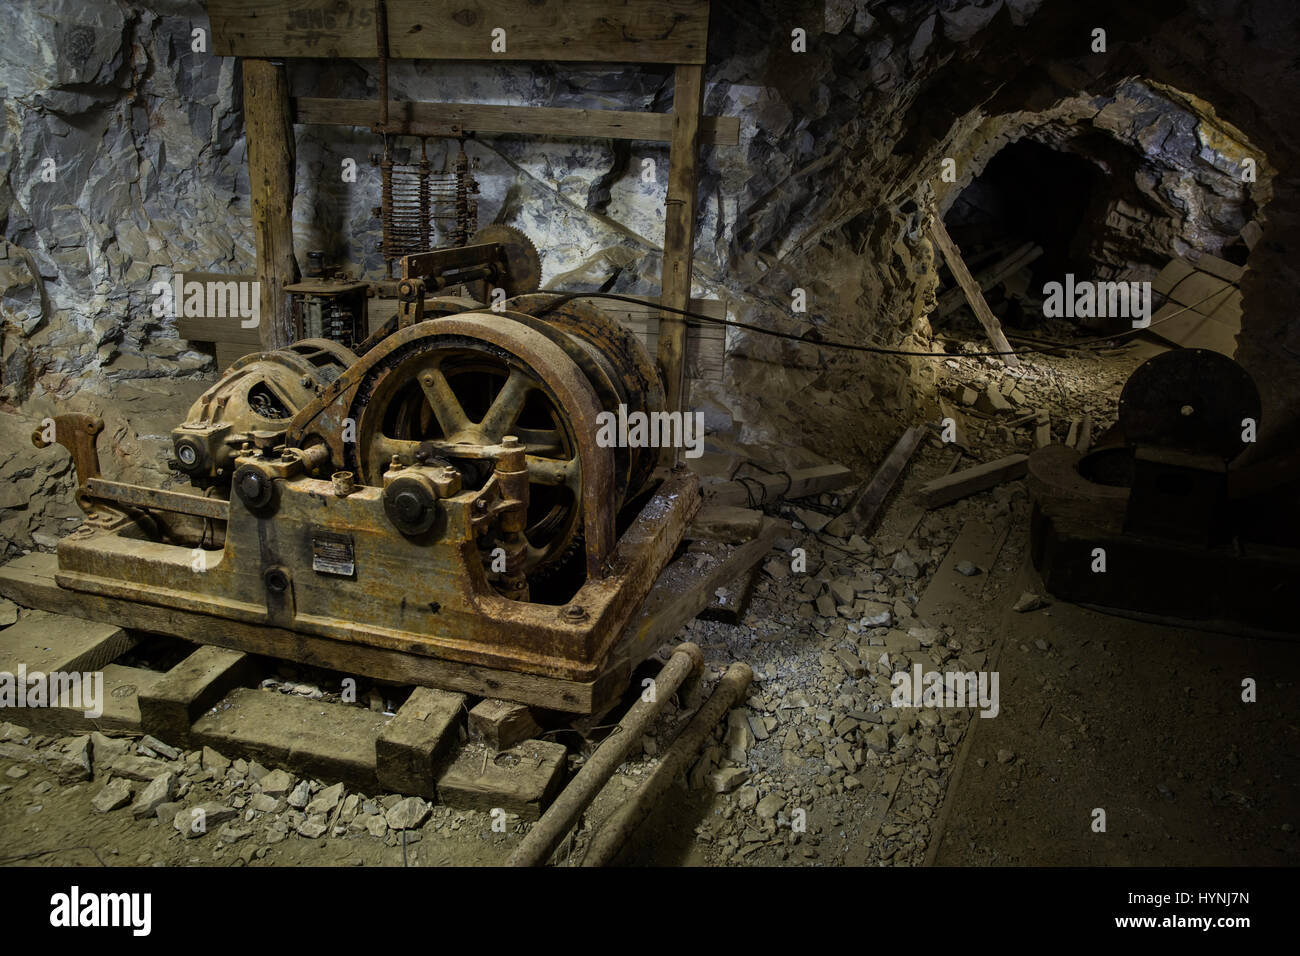 Underground Mining Equipment High Resolution Stock Photography and Images -  Alamy